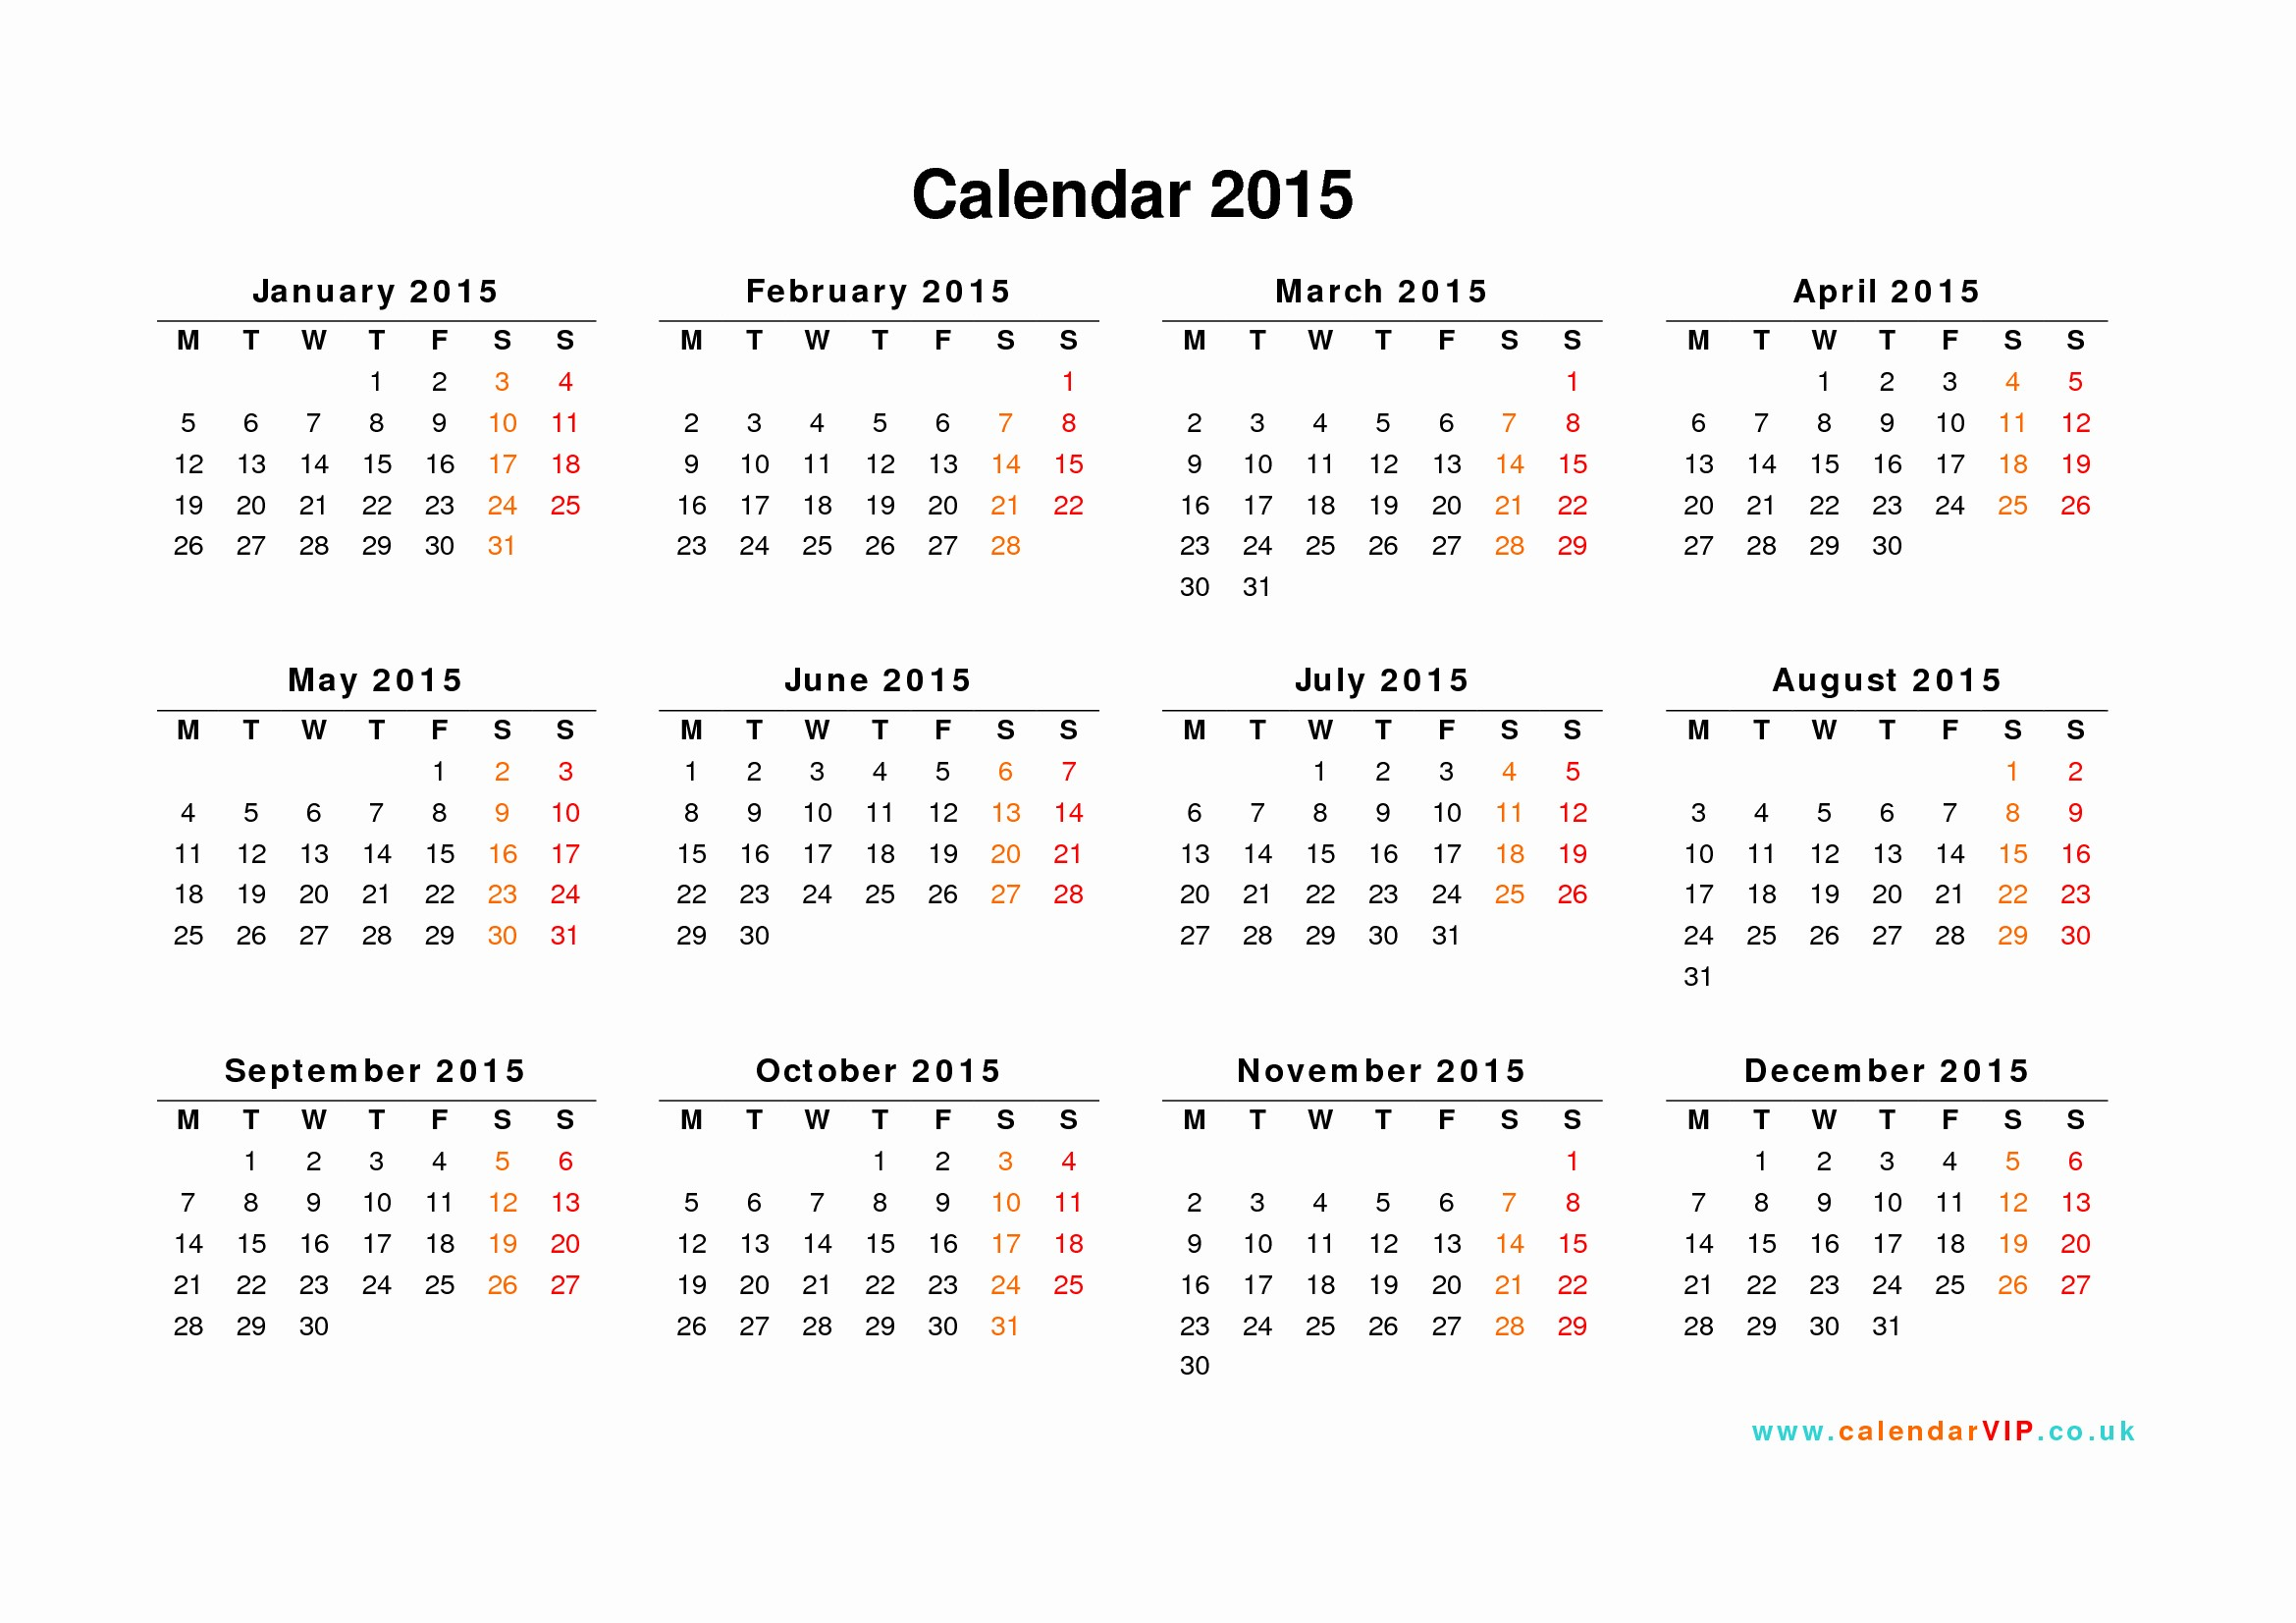 Free Yearly Calendar Templates 2015 Elegant Calendar 2015 Uk Free Yearly Calendar Templates for Uk